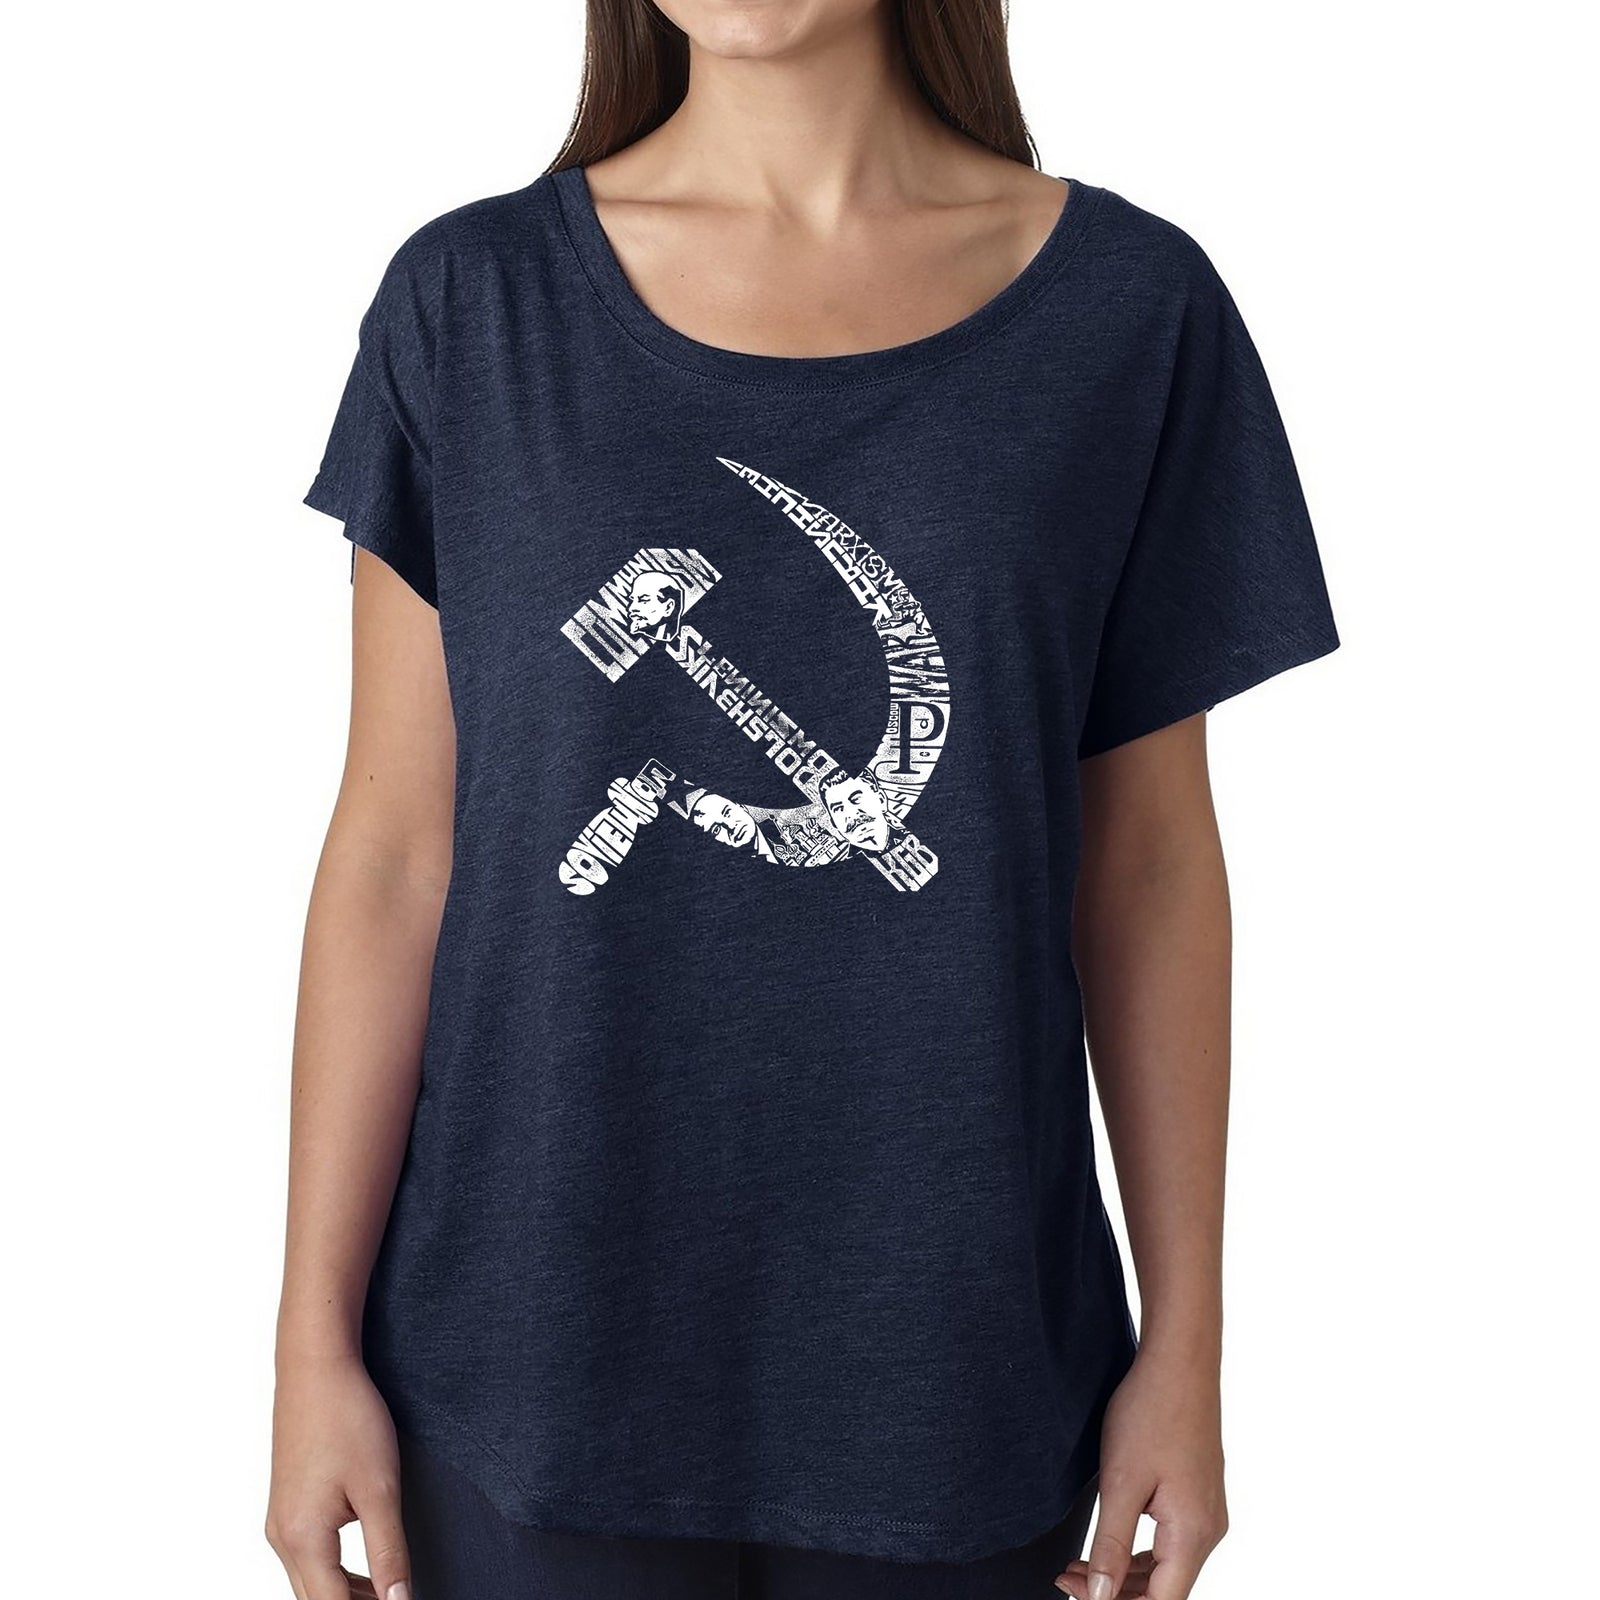 Women's Loose Fit Dolman Cut Word Art Shirt - SOVIET HAMMER AND SICKLE